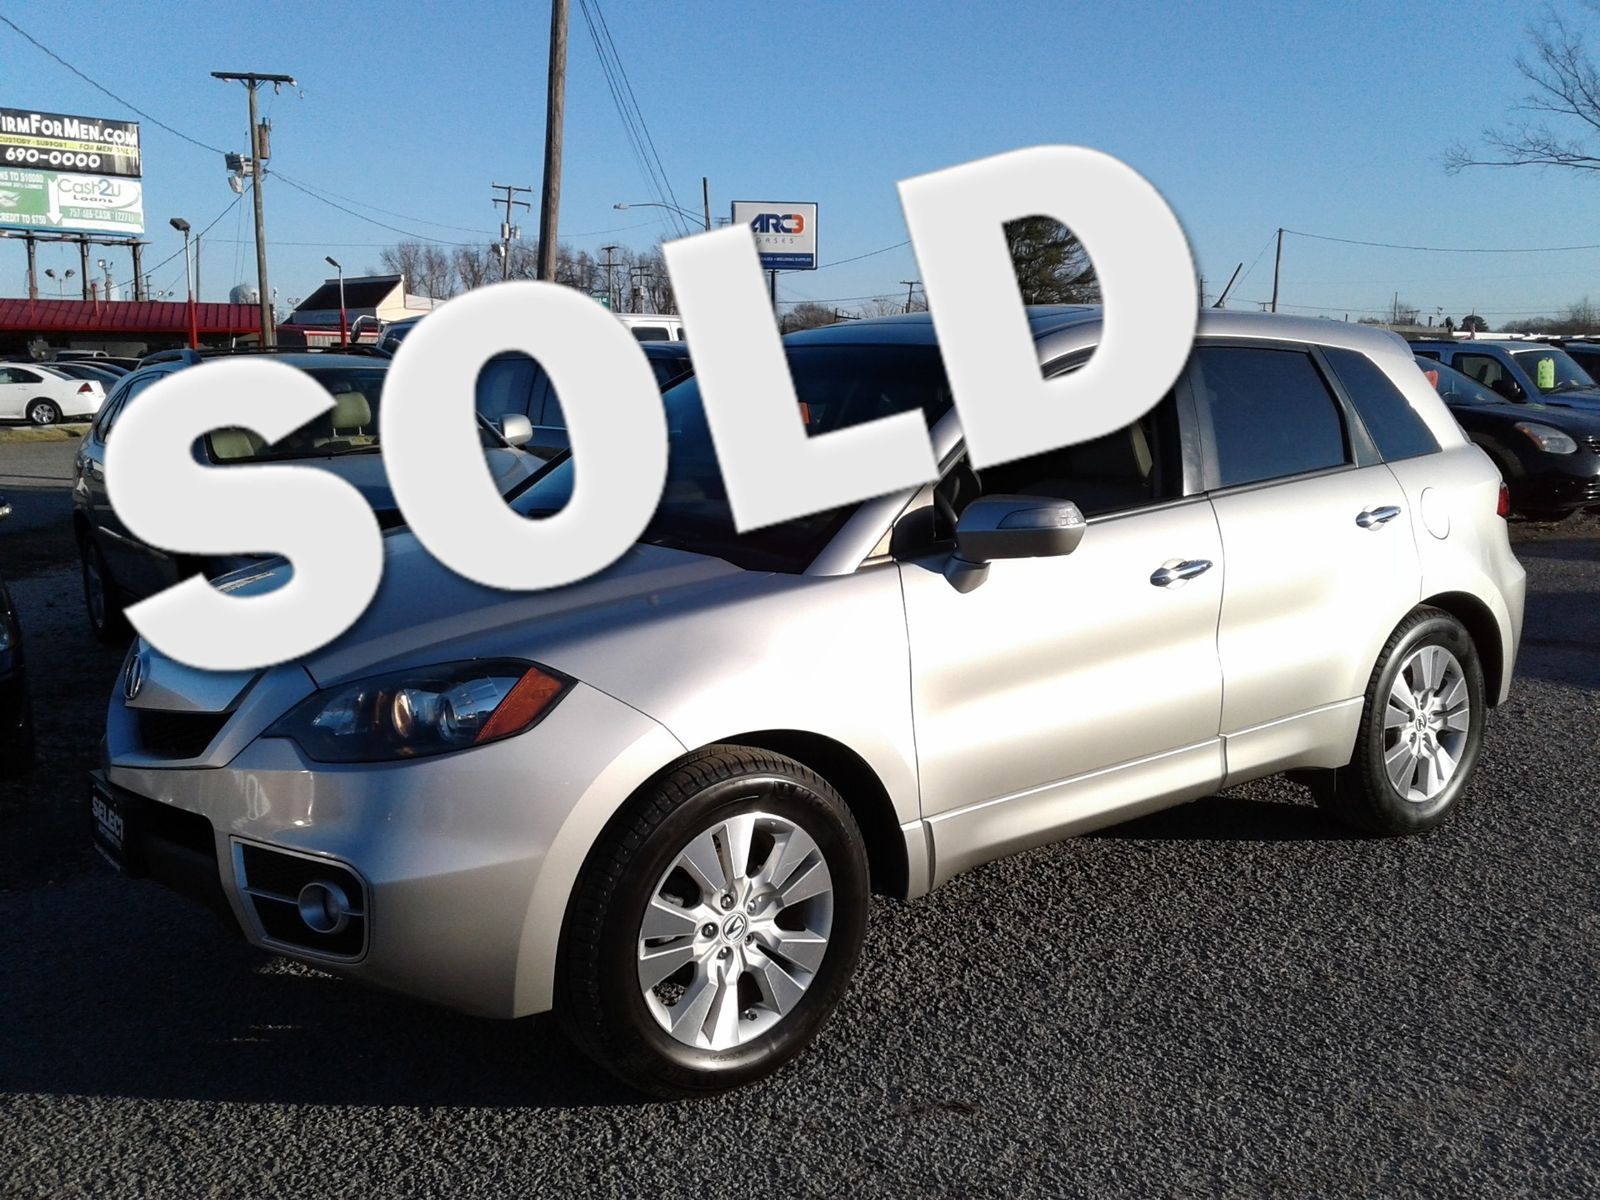 sale at pa lot acura copart for cars rdx chalfont